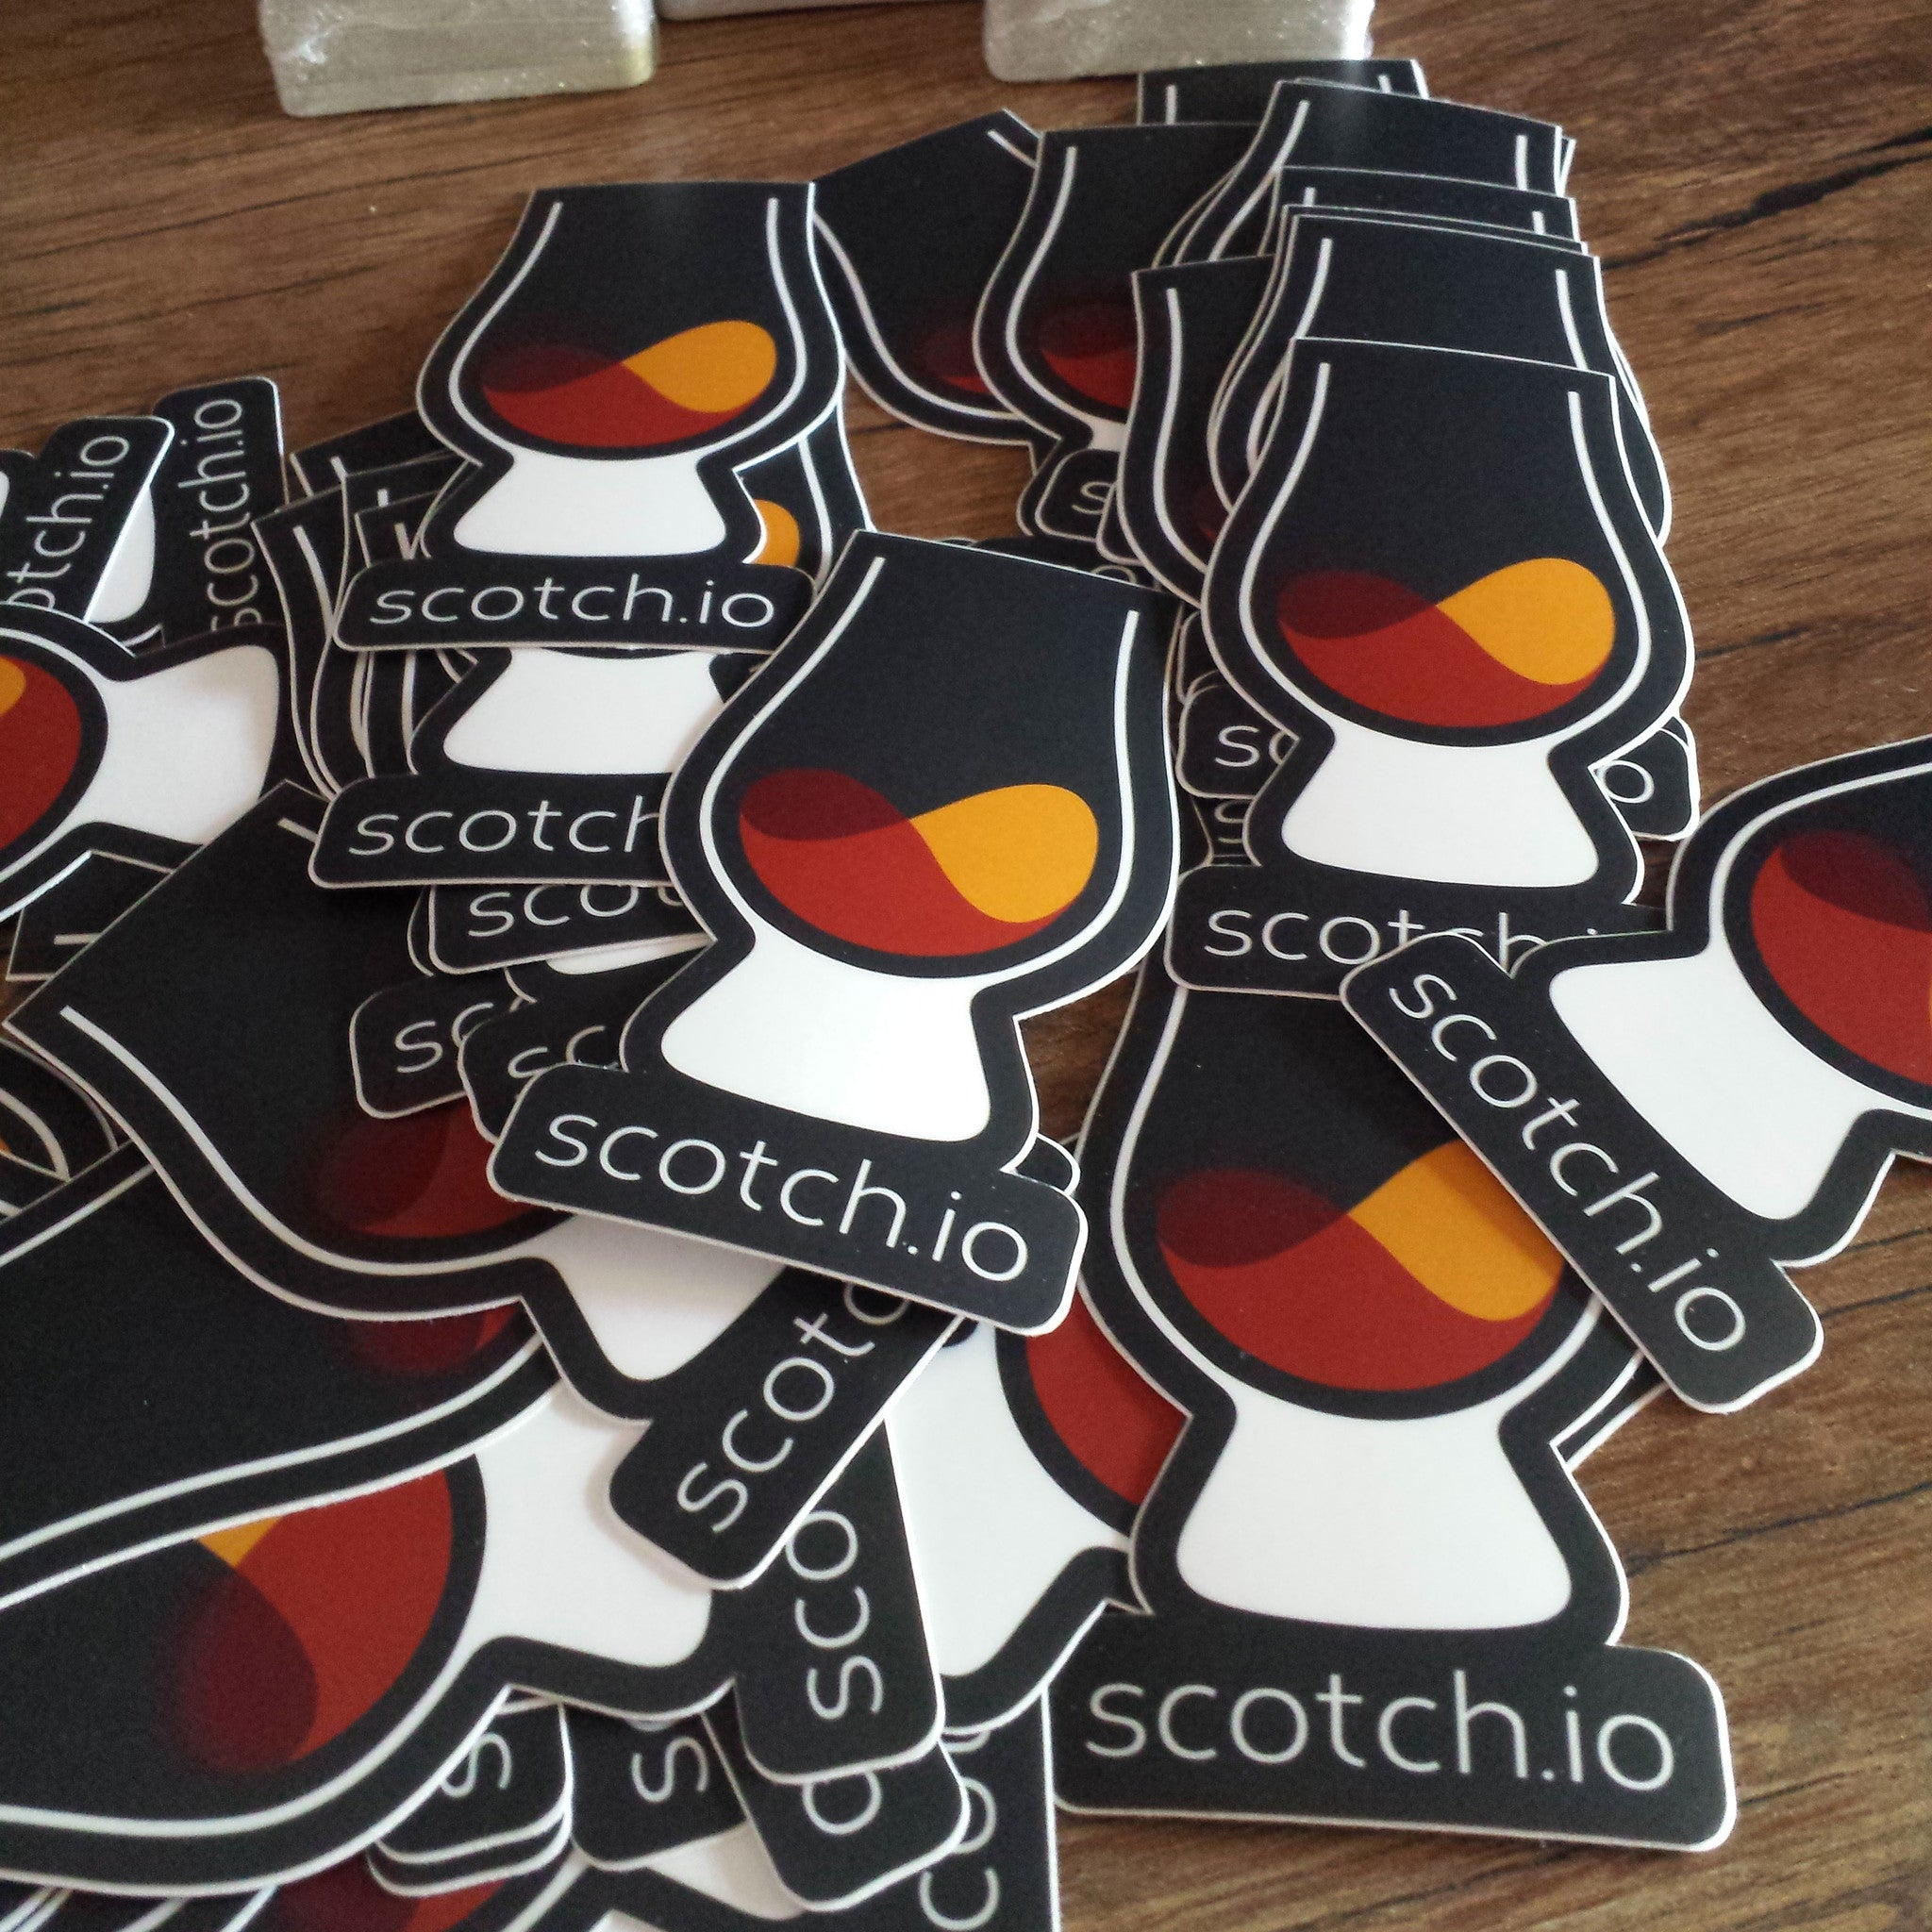 Scotch.io Die Cut Sticker (Pack of 3)